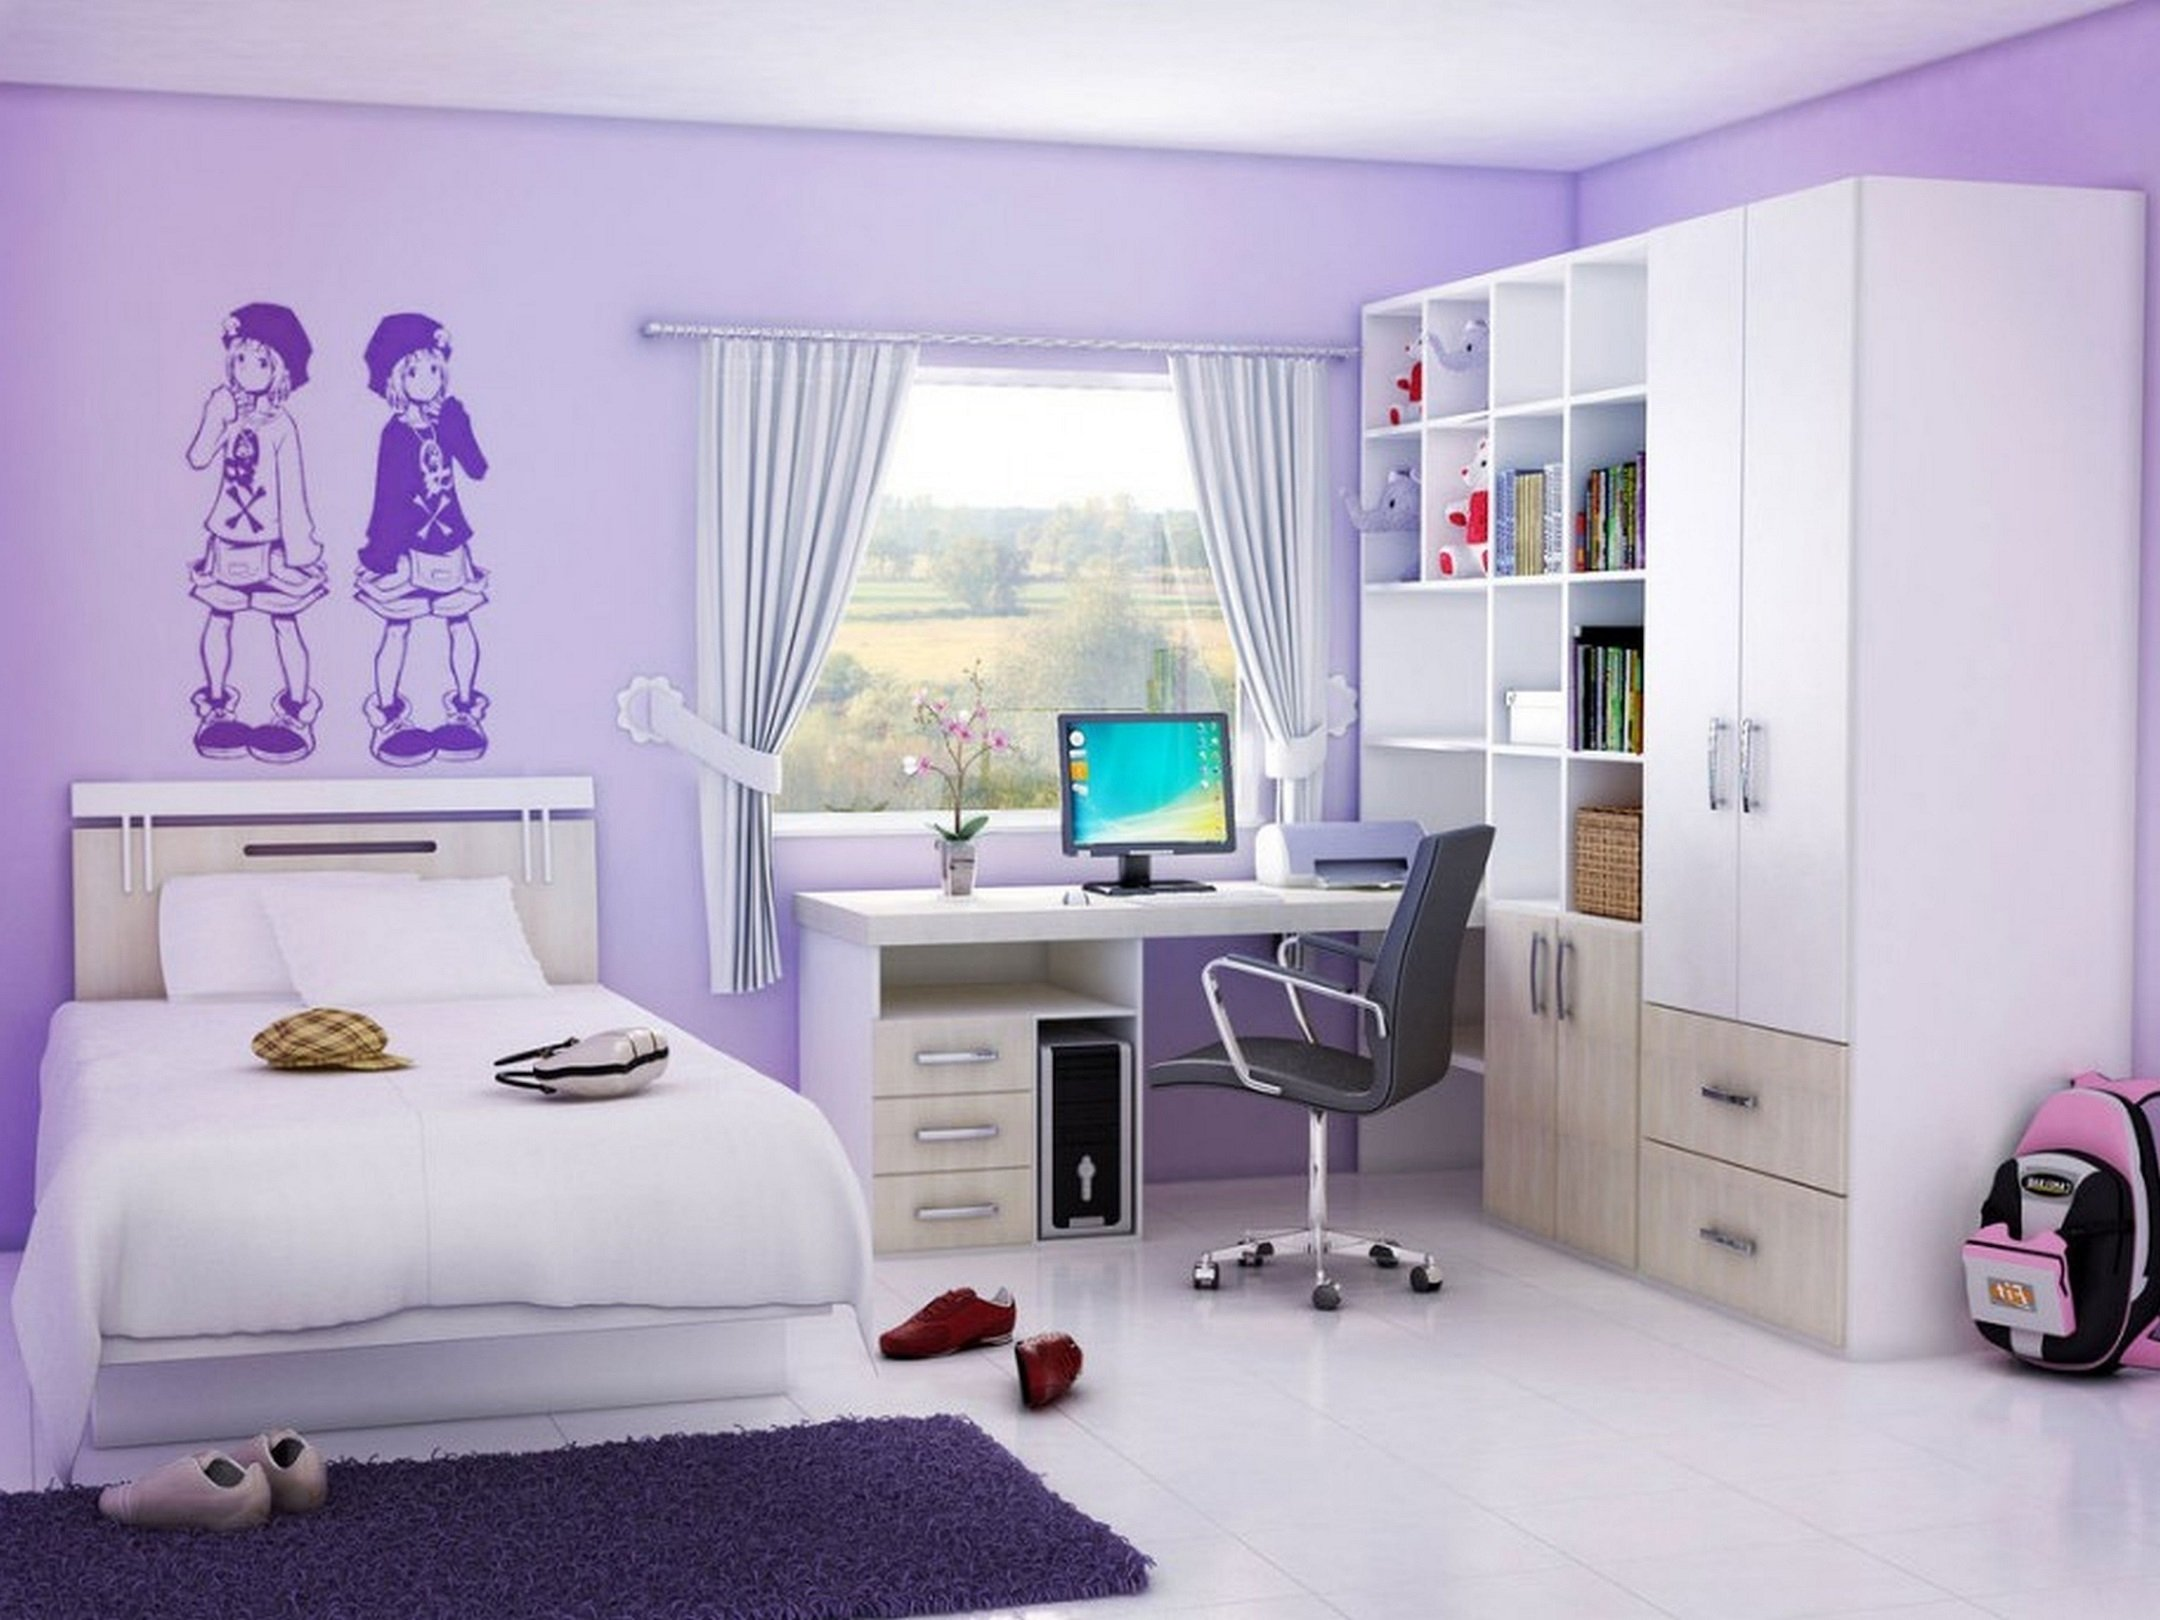 10 Pretty Teenage Bedroom Ideas For Small Rooms teenage girl bedroom ideas for small rooms 2020